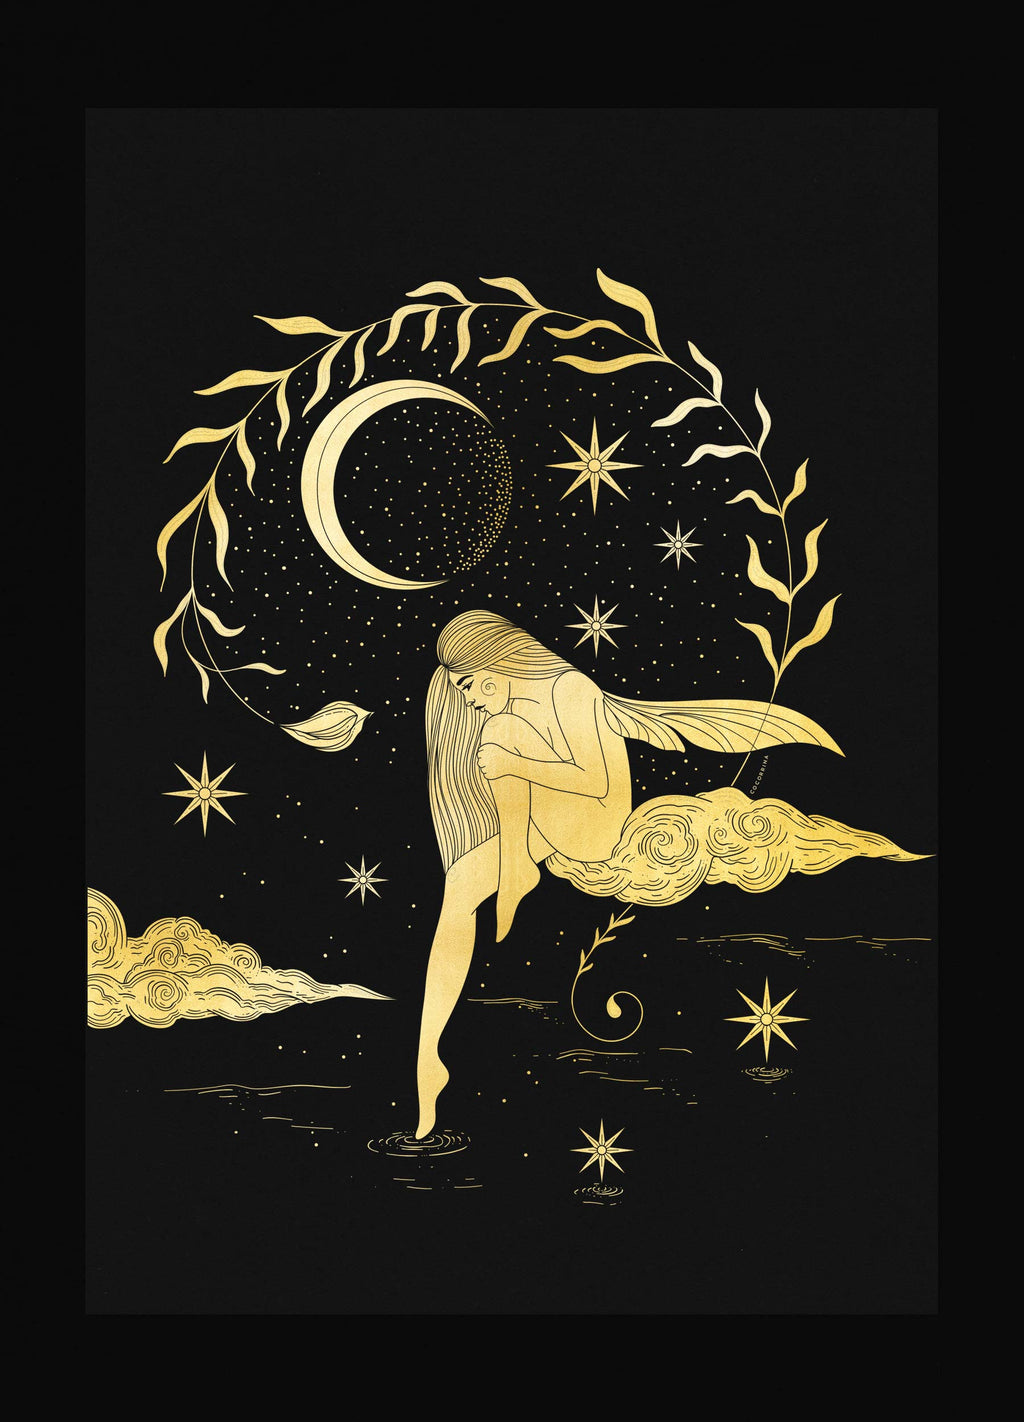 Star Fairy gold foil art print on black paper by Cocorrina & Co